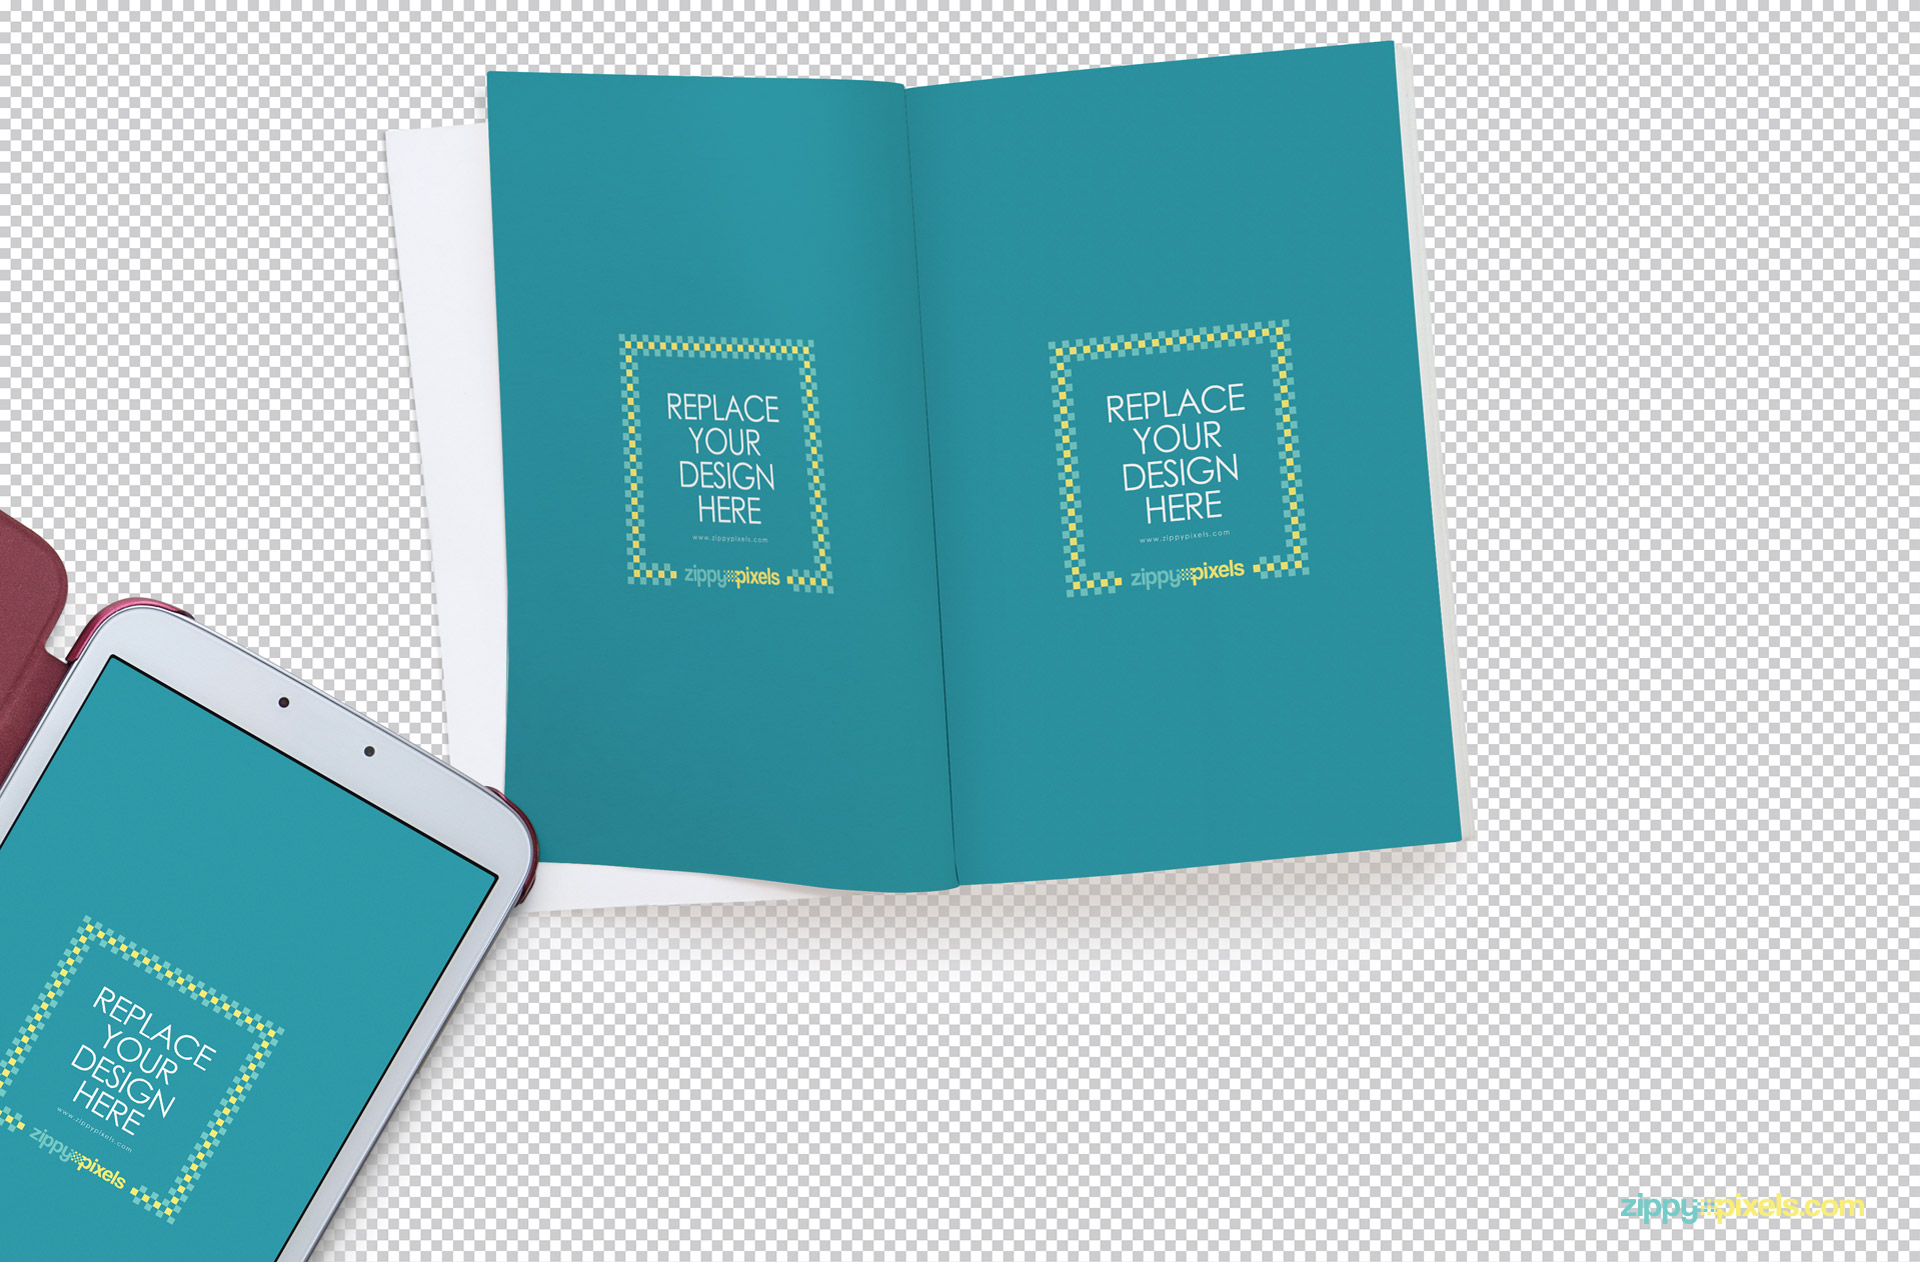 You can use Adobe Photoshop to insert your designs in this open book mockup PSD.